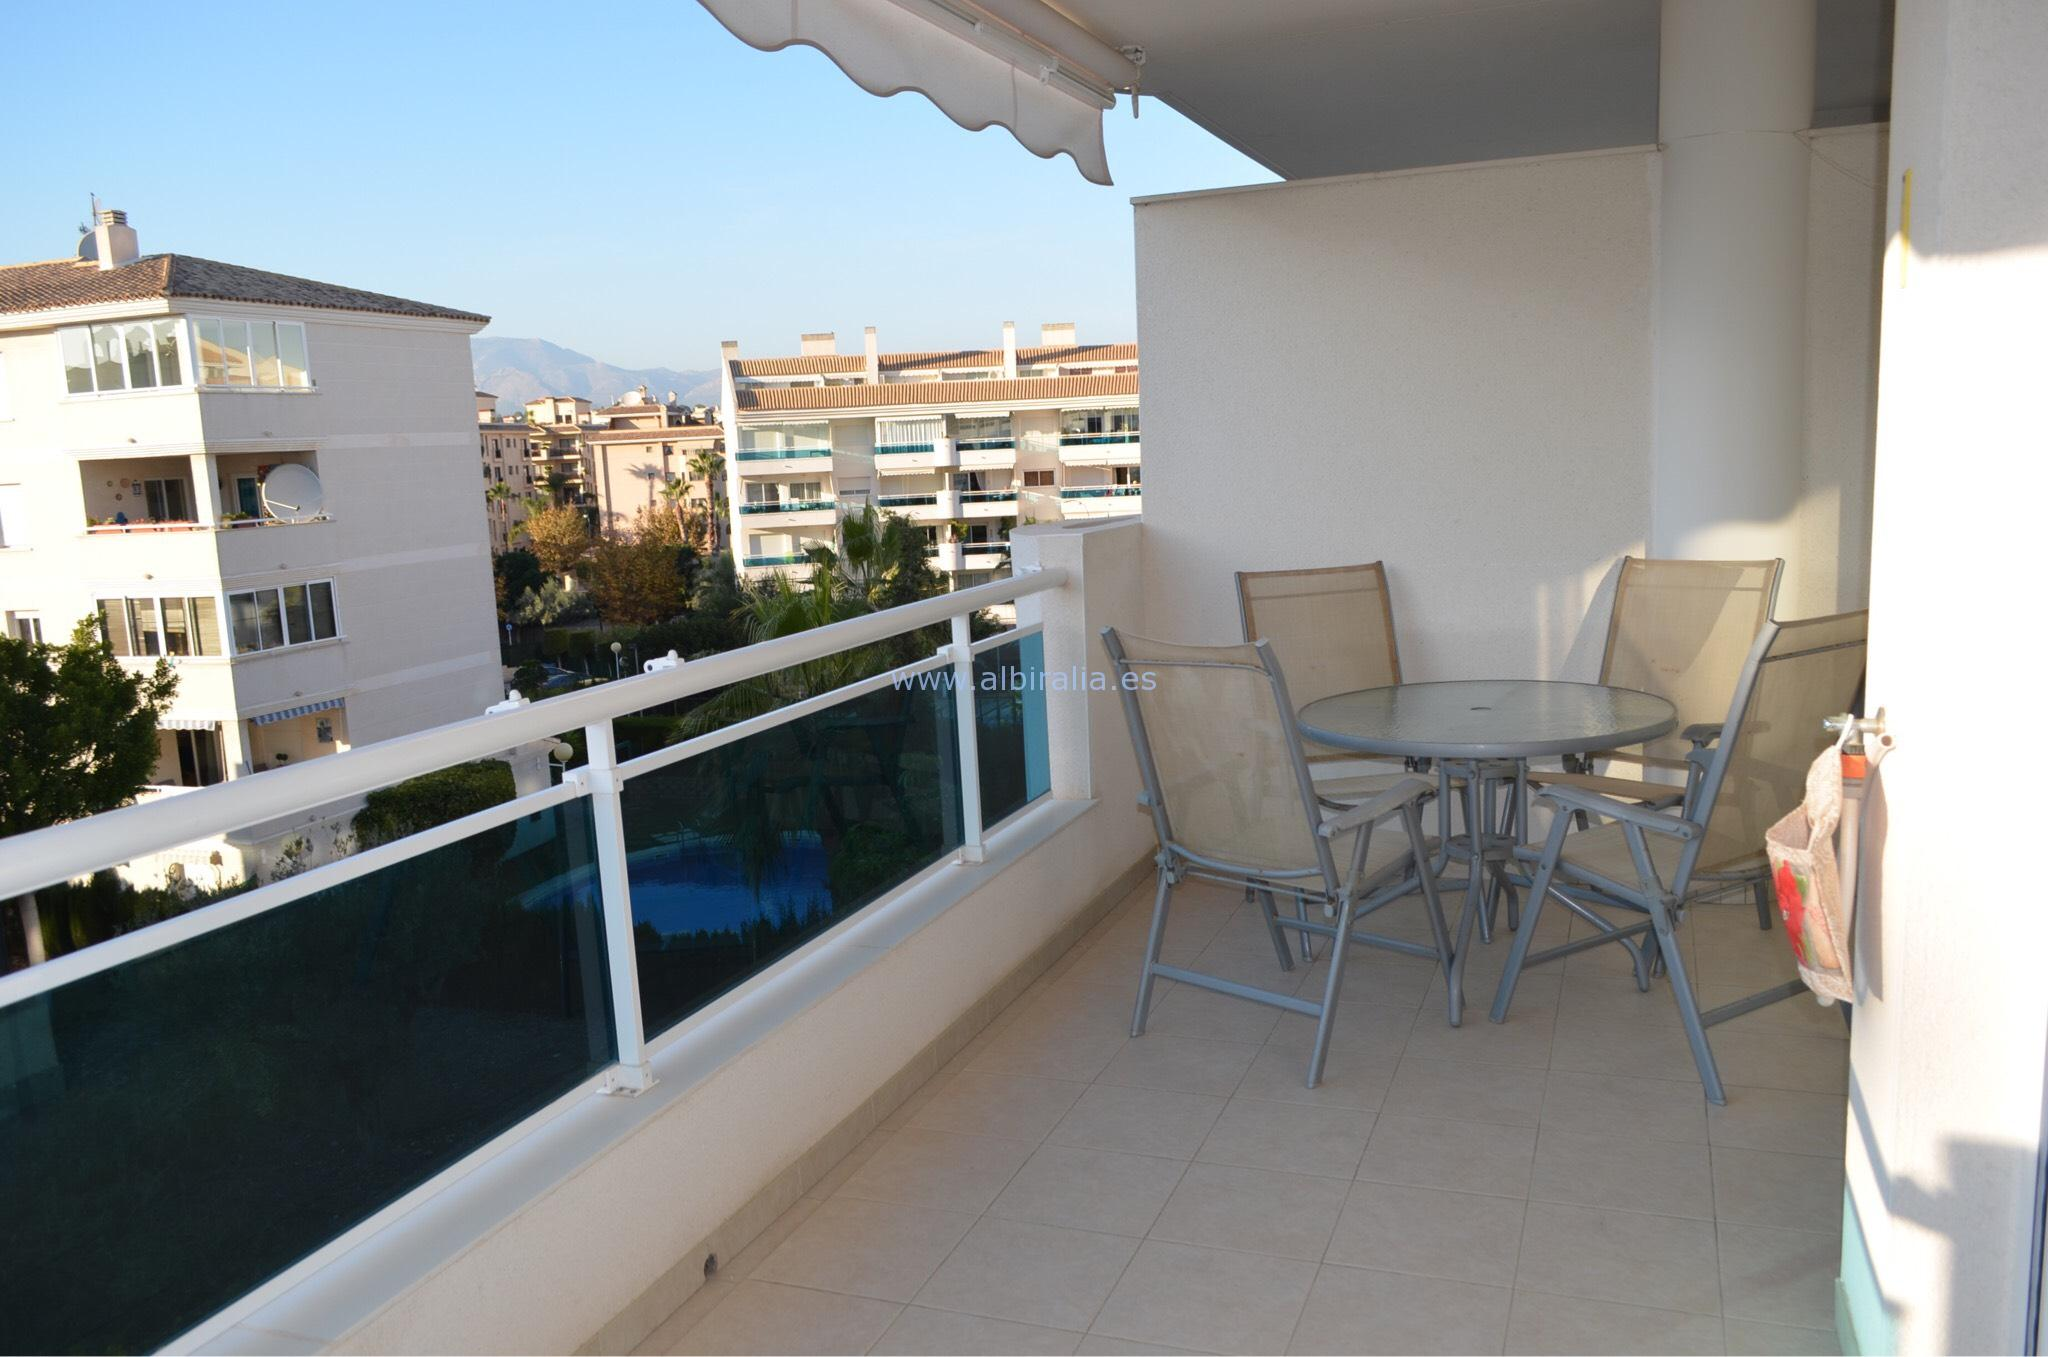 Holidays apartment in Estrella 2 Albir I A241